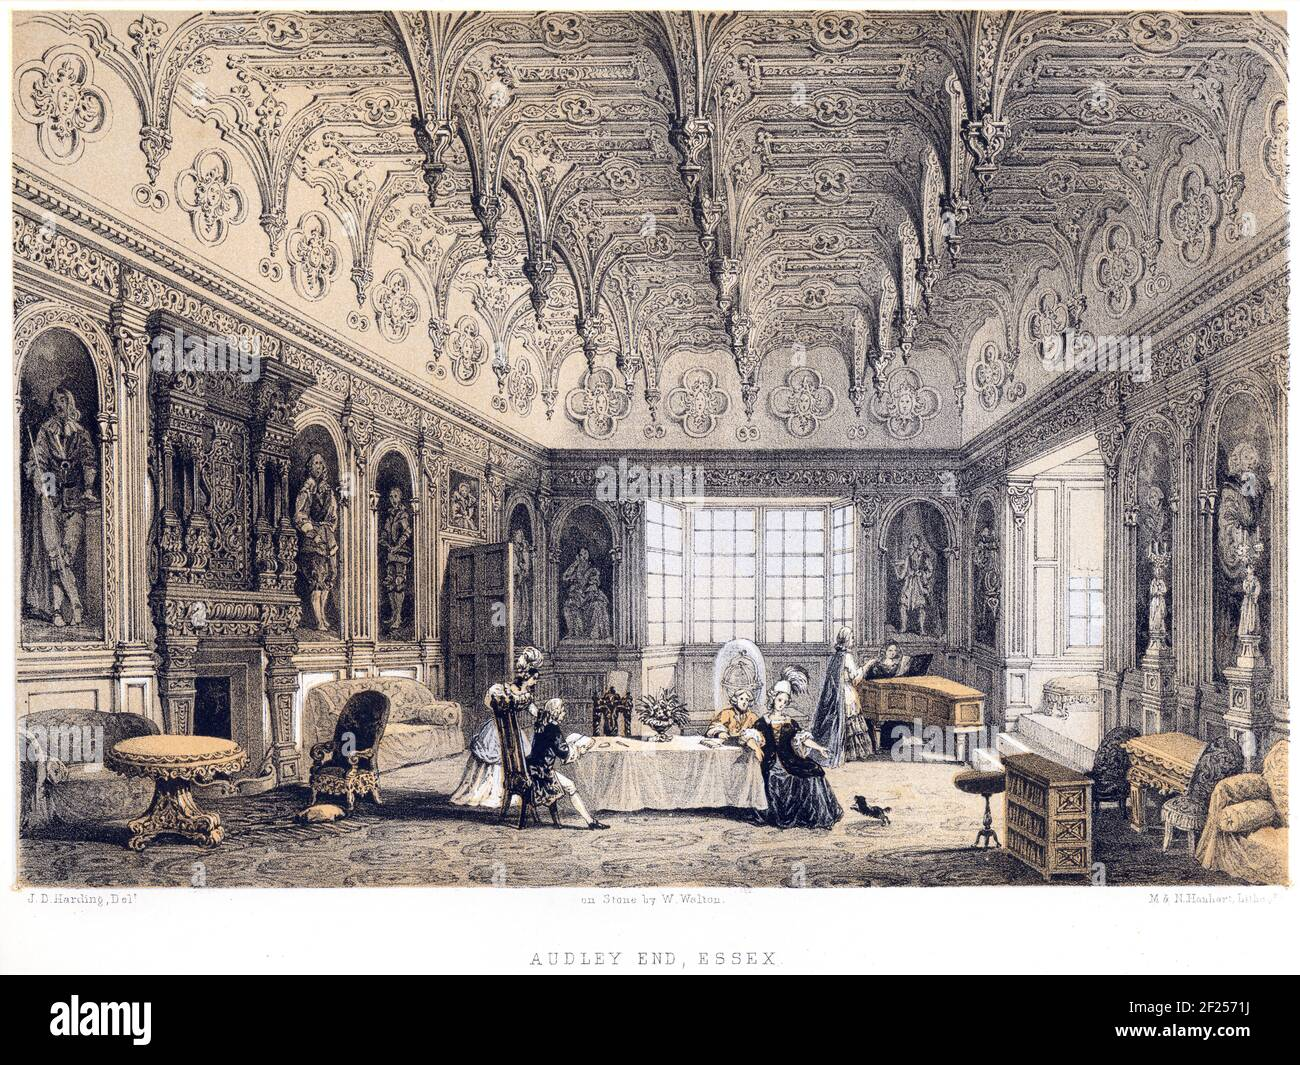 A lithotint of Audley End, Essex UK scanned at high resolution from a book printed in 1858. The artist J D Harding died in 1863. Stock Photo